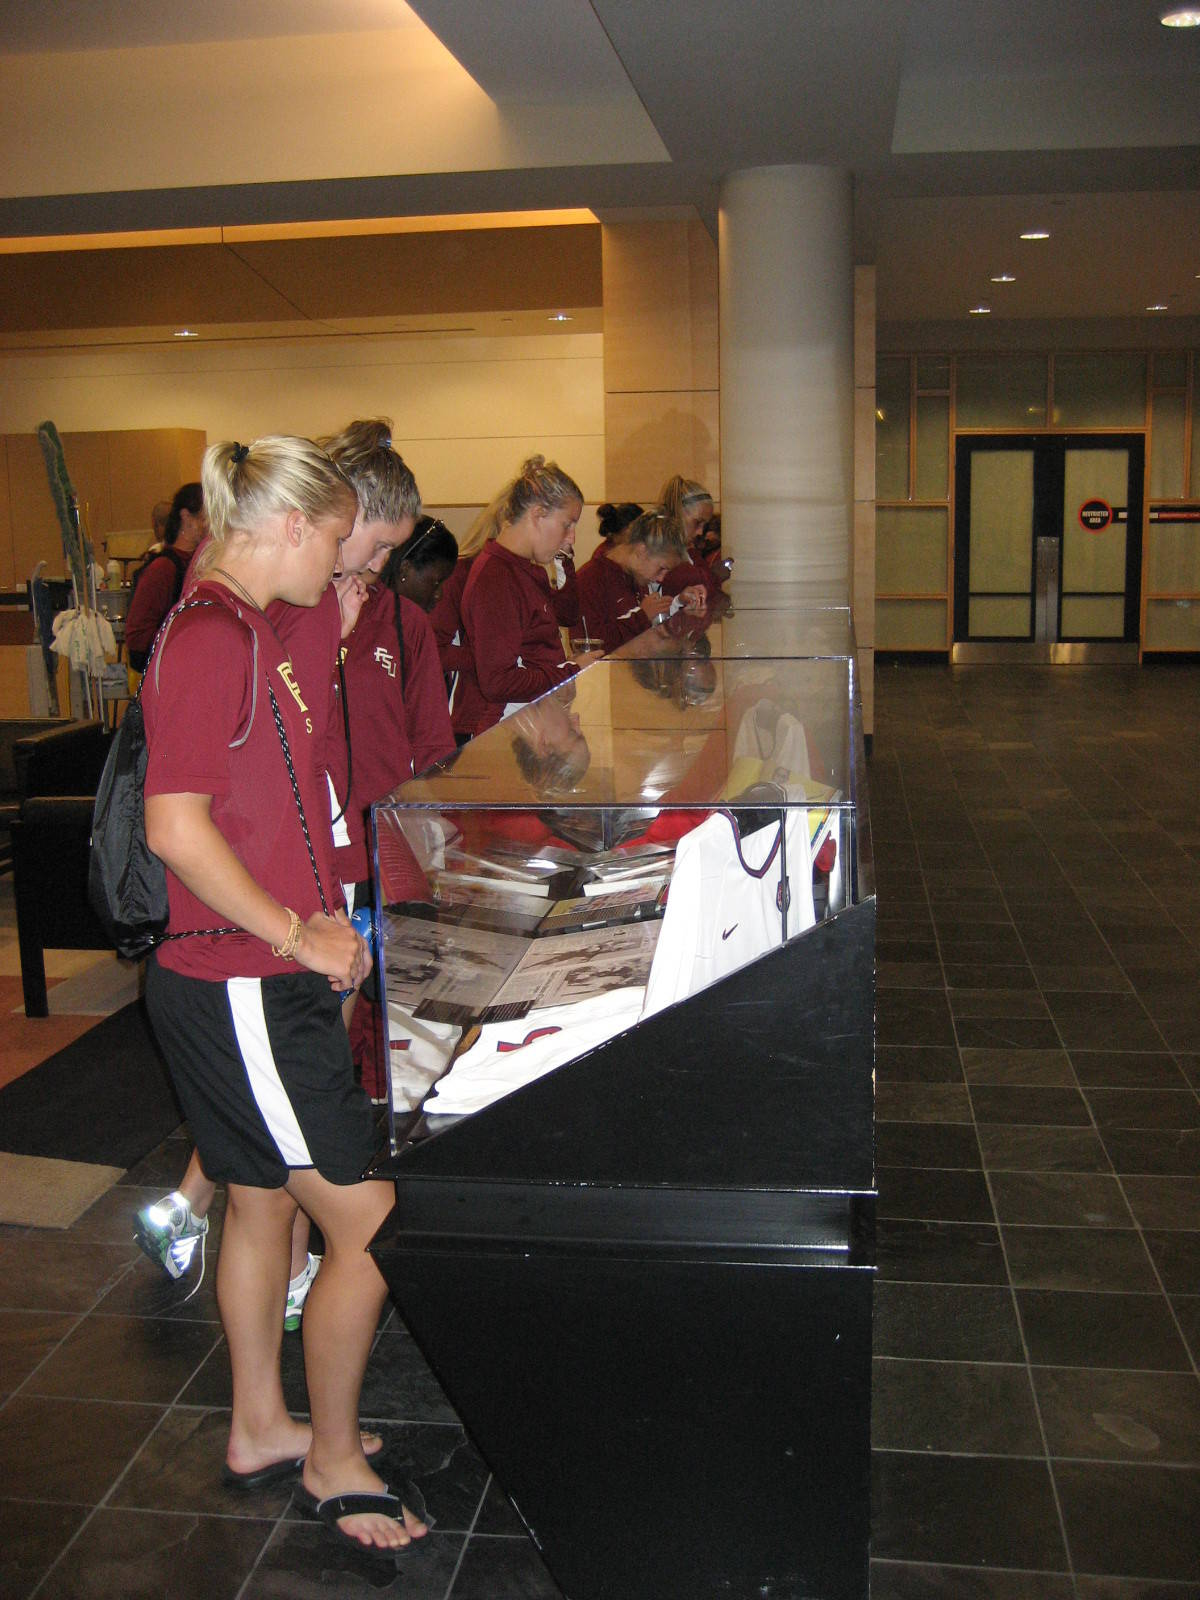 FSU soccer team looks at the tribute to Hamm